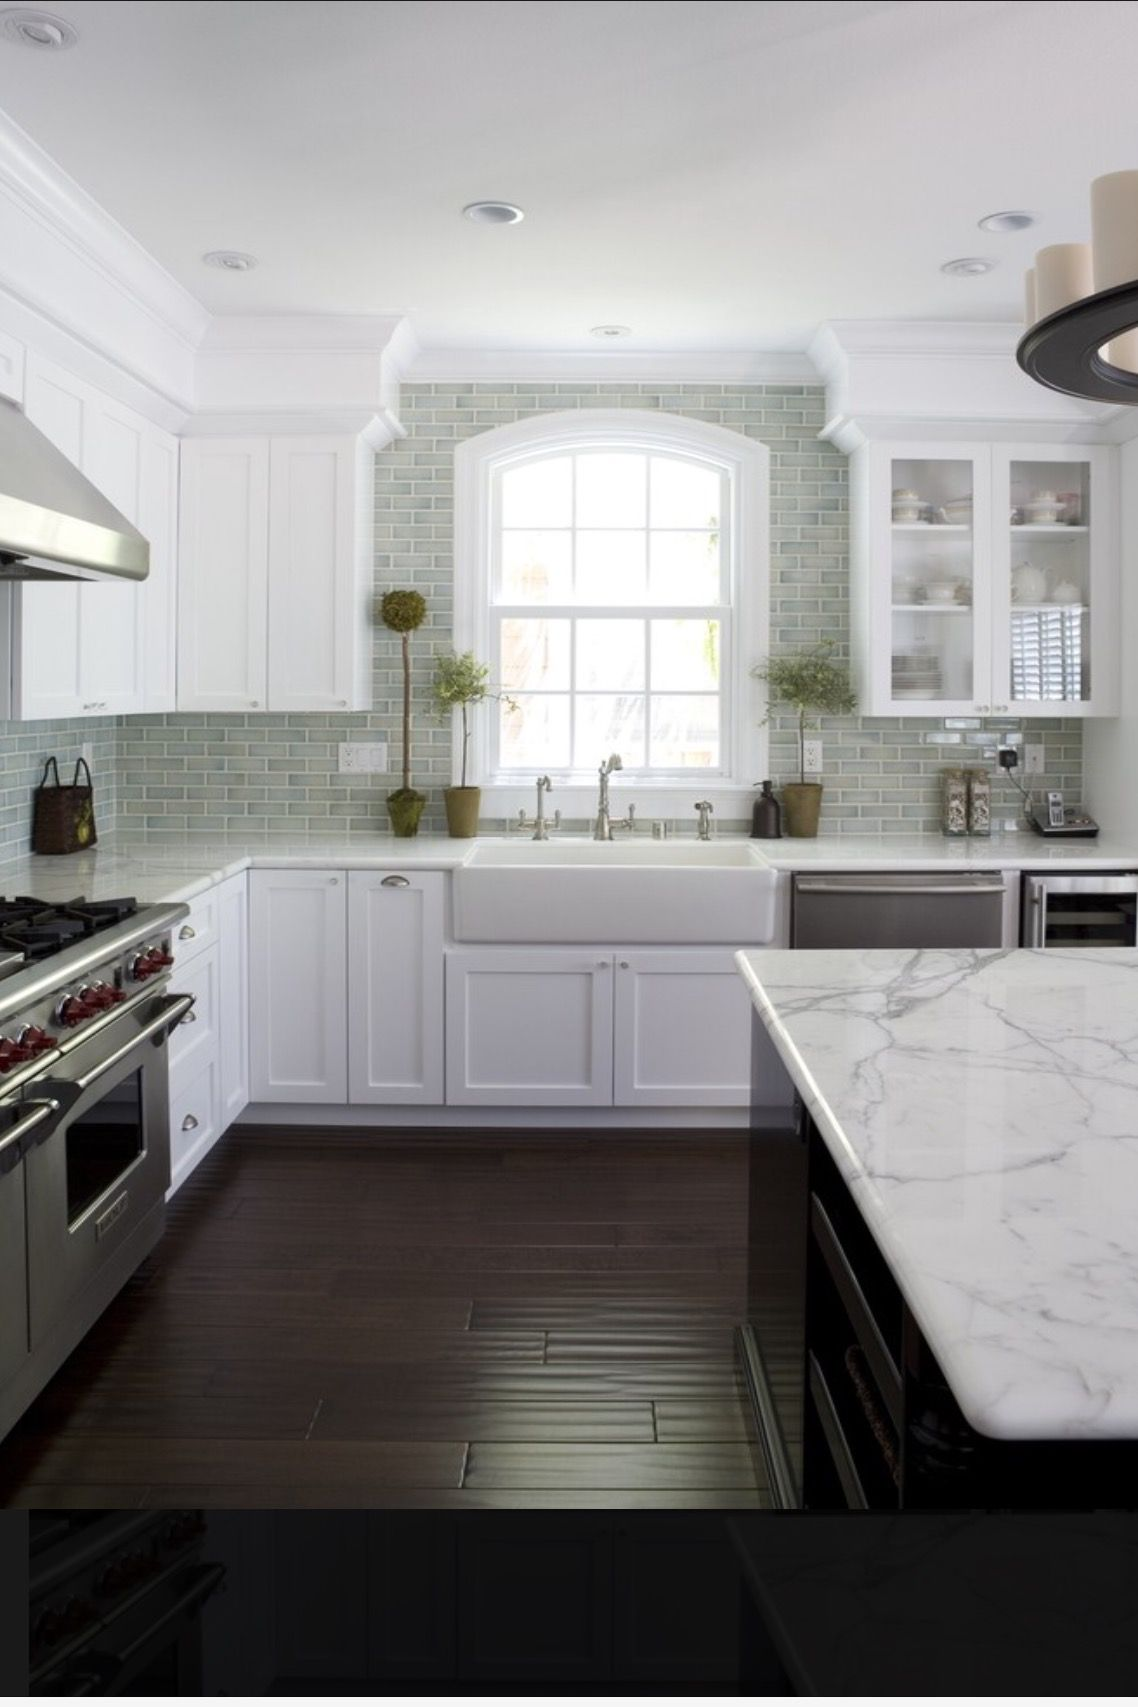 White shaker cabinets hand scraped wood floor crackle subway tile